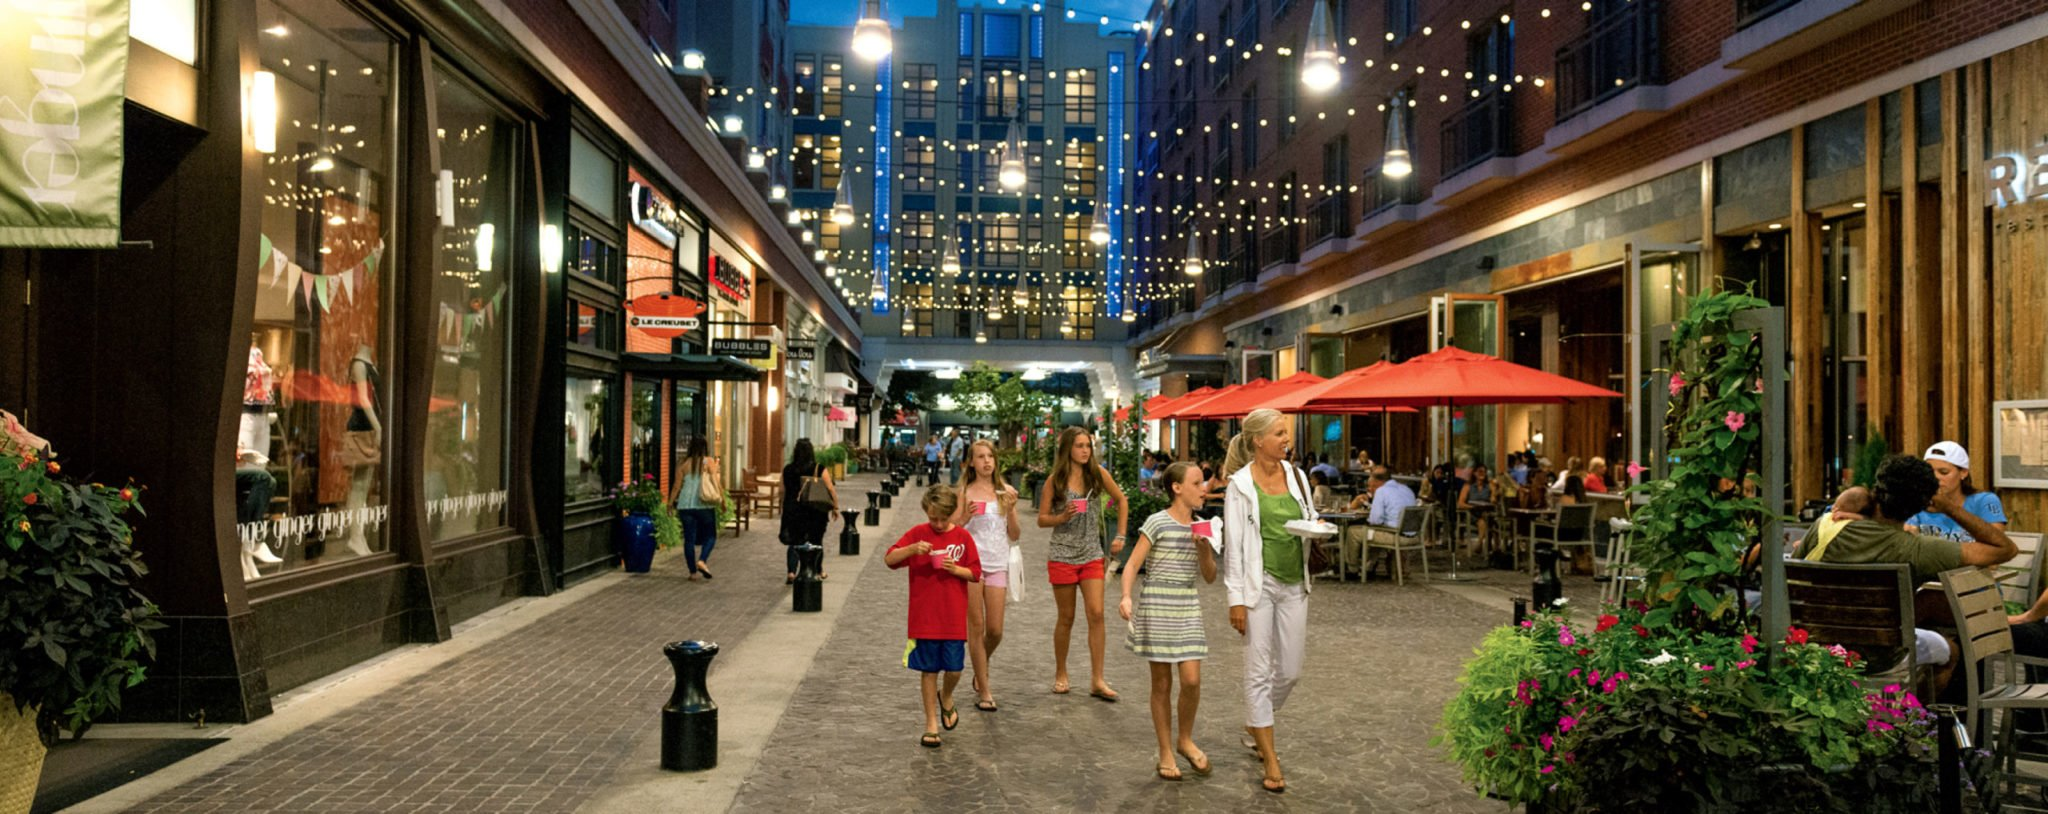 Bethesda Row is the downtown area's shopping and dining hub. Photograph by Andrew Propp.